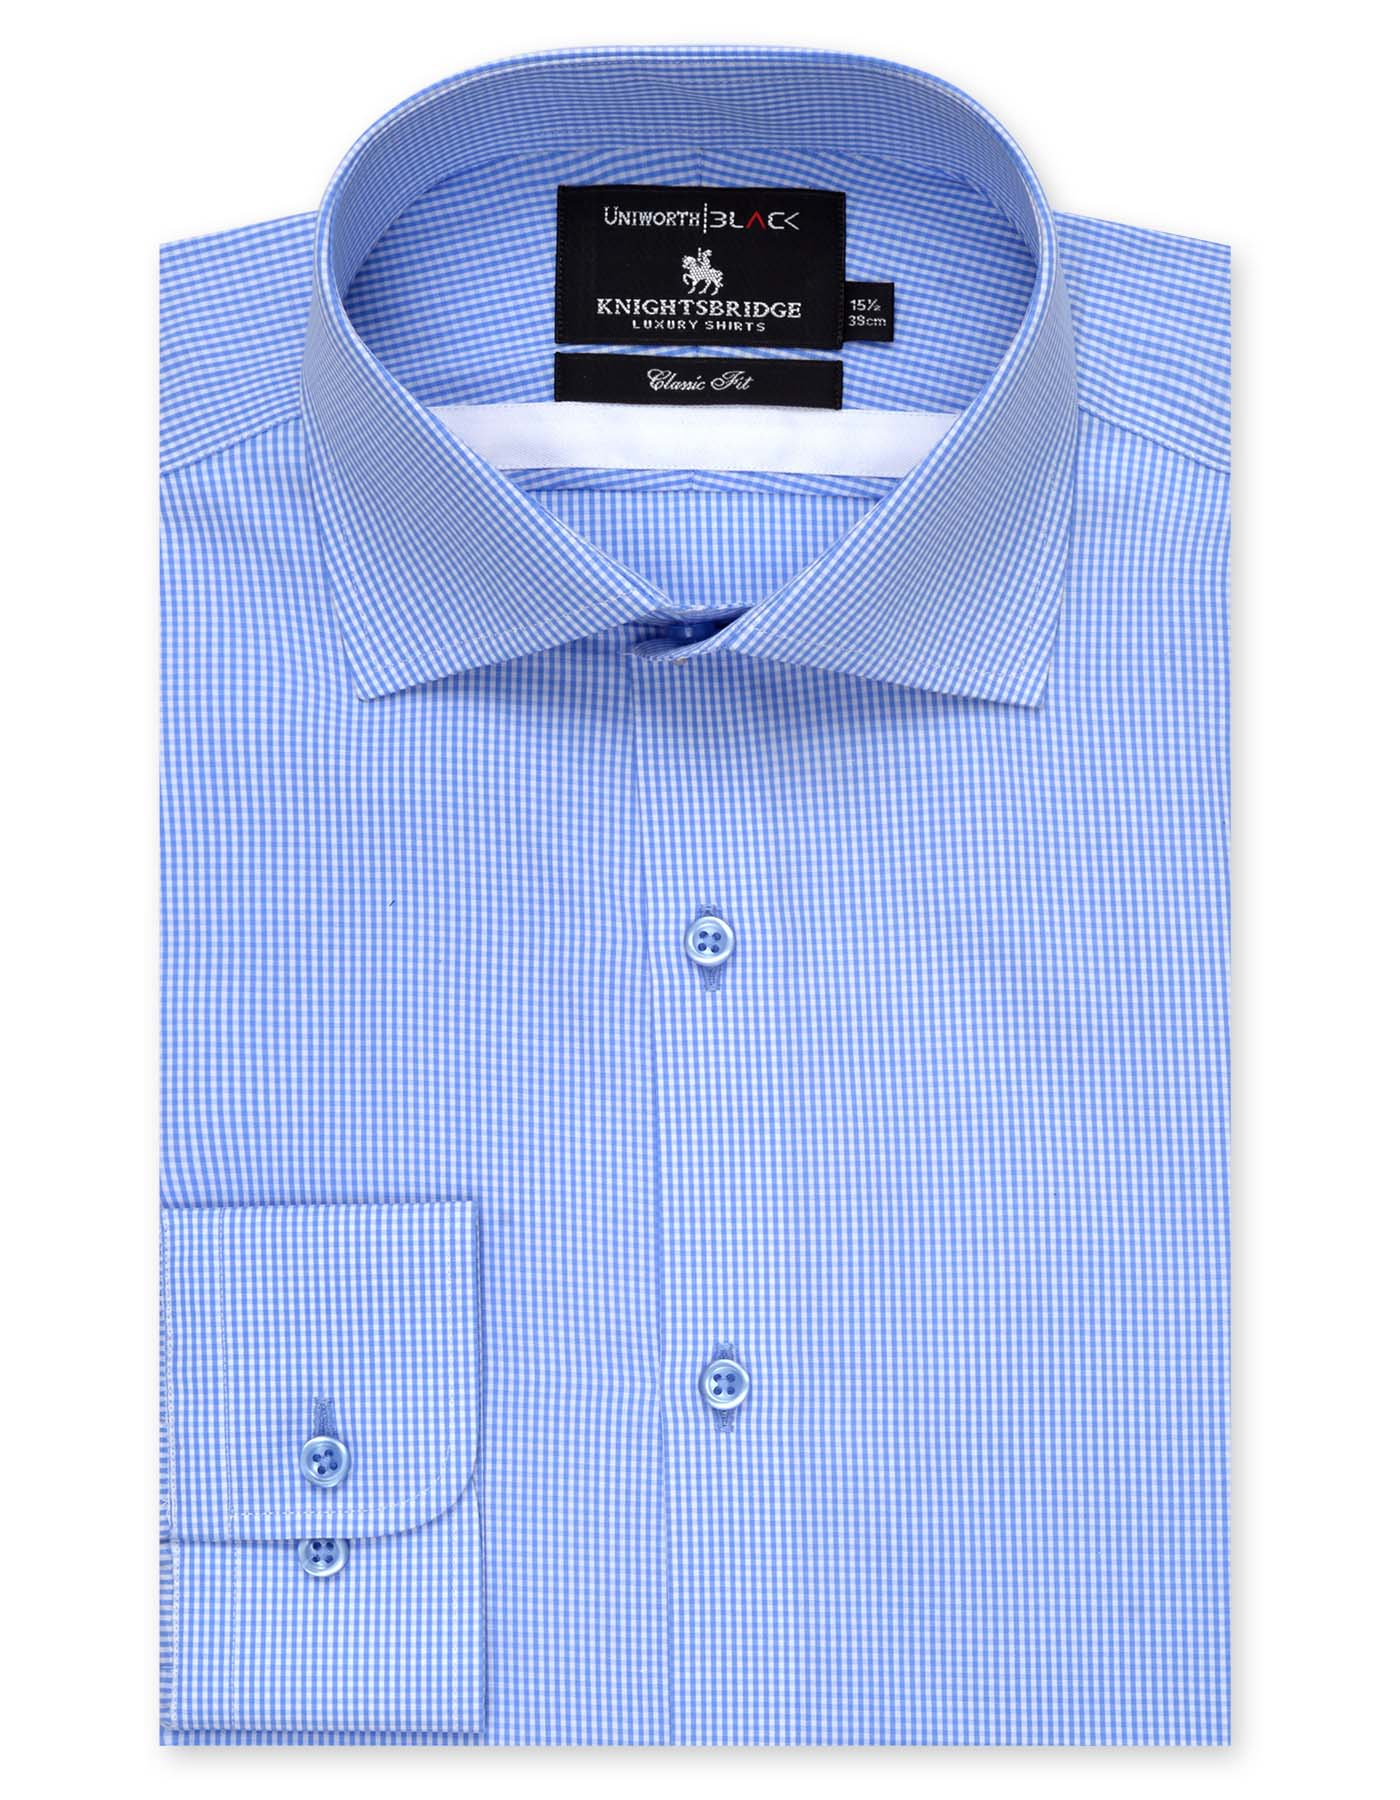 KNIGHTS BRIDGE WHITE AND SKY BLUE CHECK CLASSIC FIT DRESS SHIRT